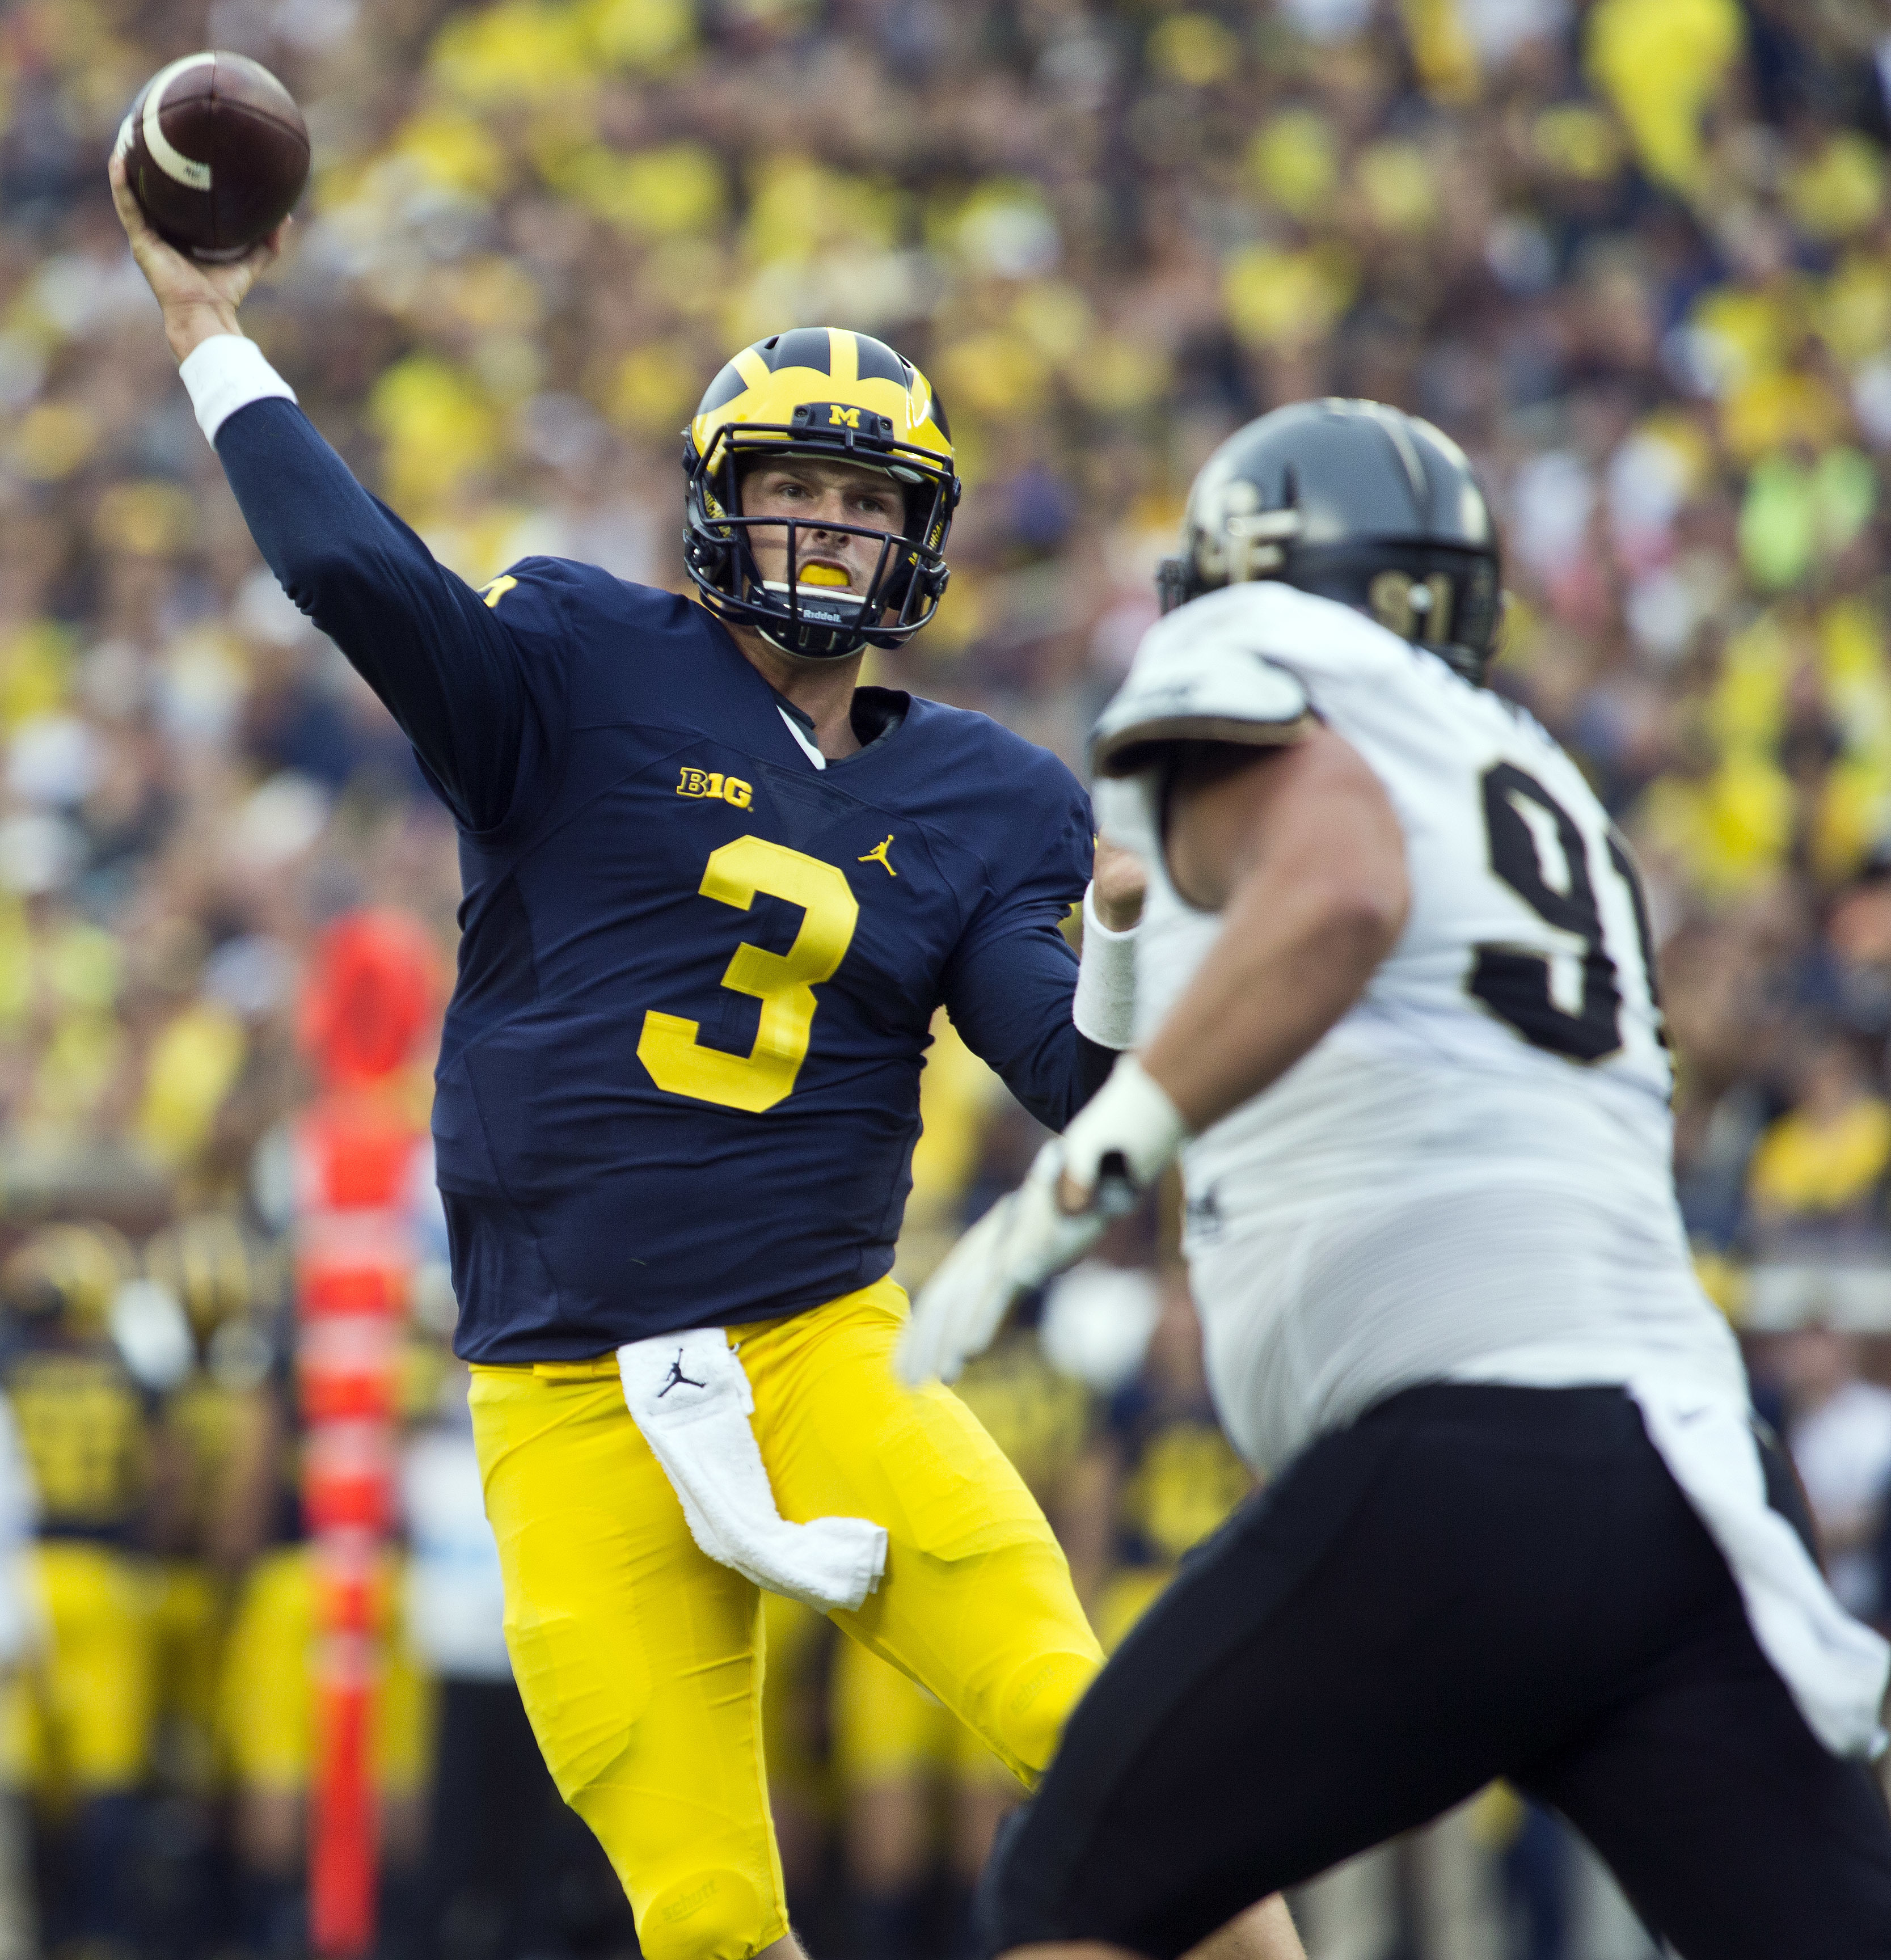 FILE - In this Sept. 10, 2016, file photo, Michigan quarterback Wilton Speight (3) throws a pass in the second quarter of an NCAA college football game against Central Florida at Michigan Stadium in Ann Arbor, Mich. Michigan takes on Iowa on Saturday in I